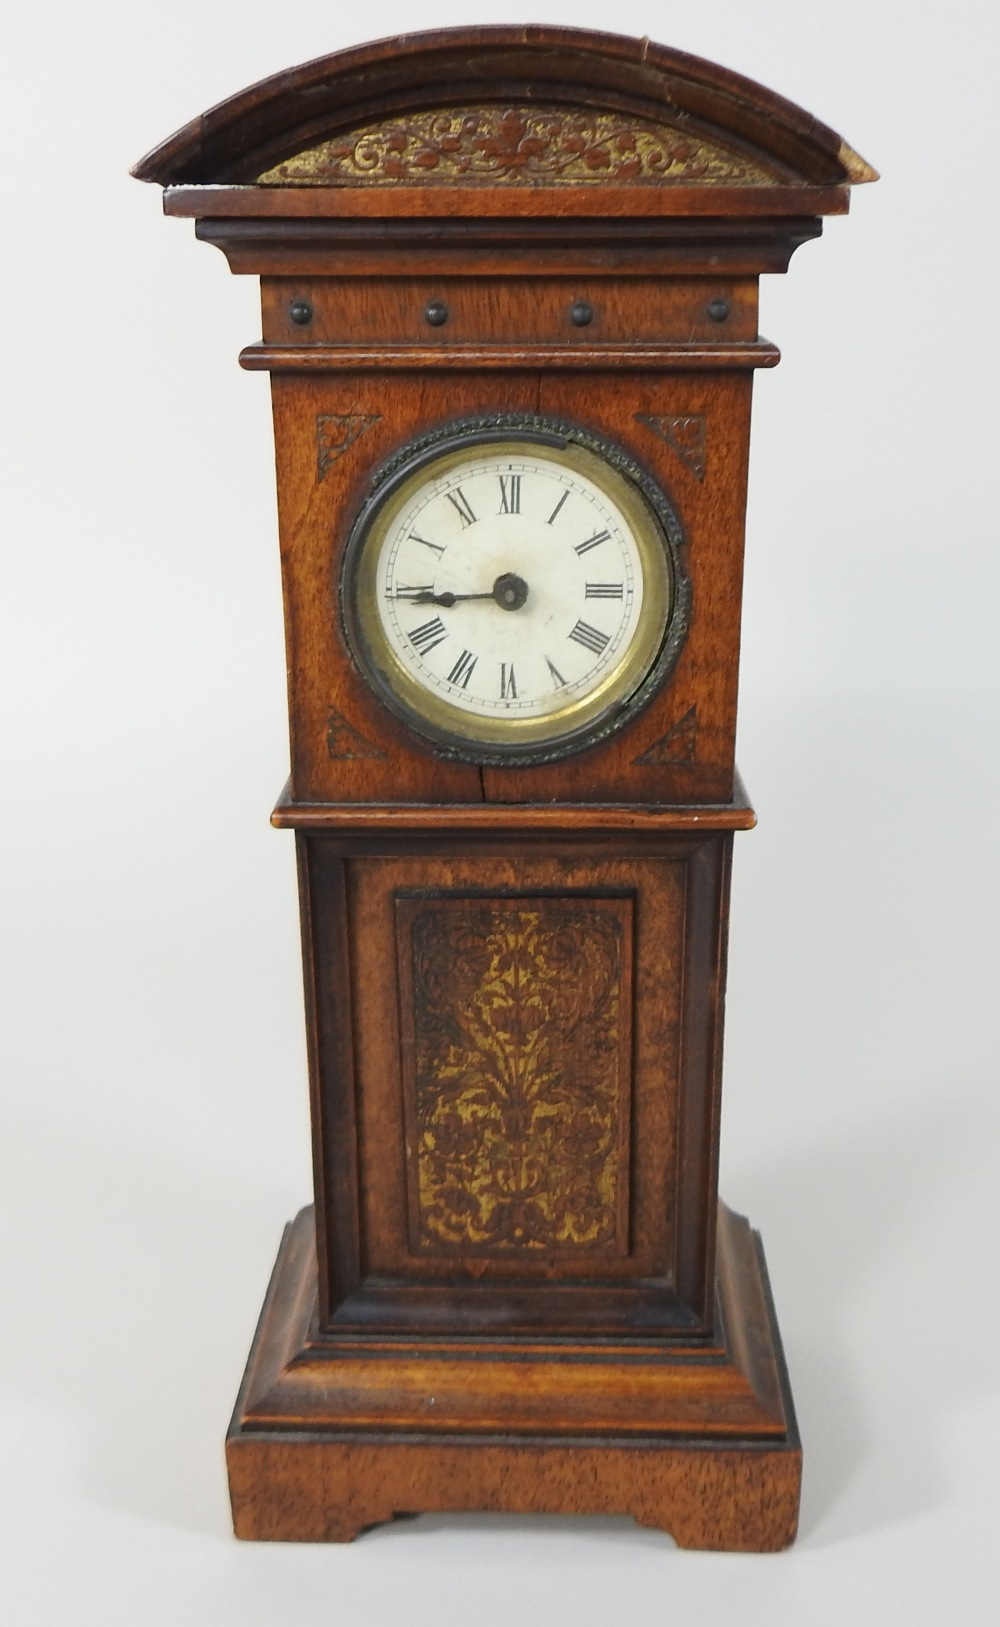 Lot 4 - A 19th century walnut cased miniature Grandfather clock, having a painted dial, with Roman hours,